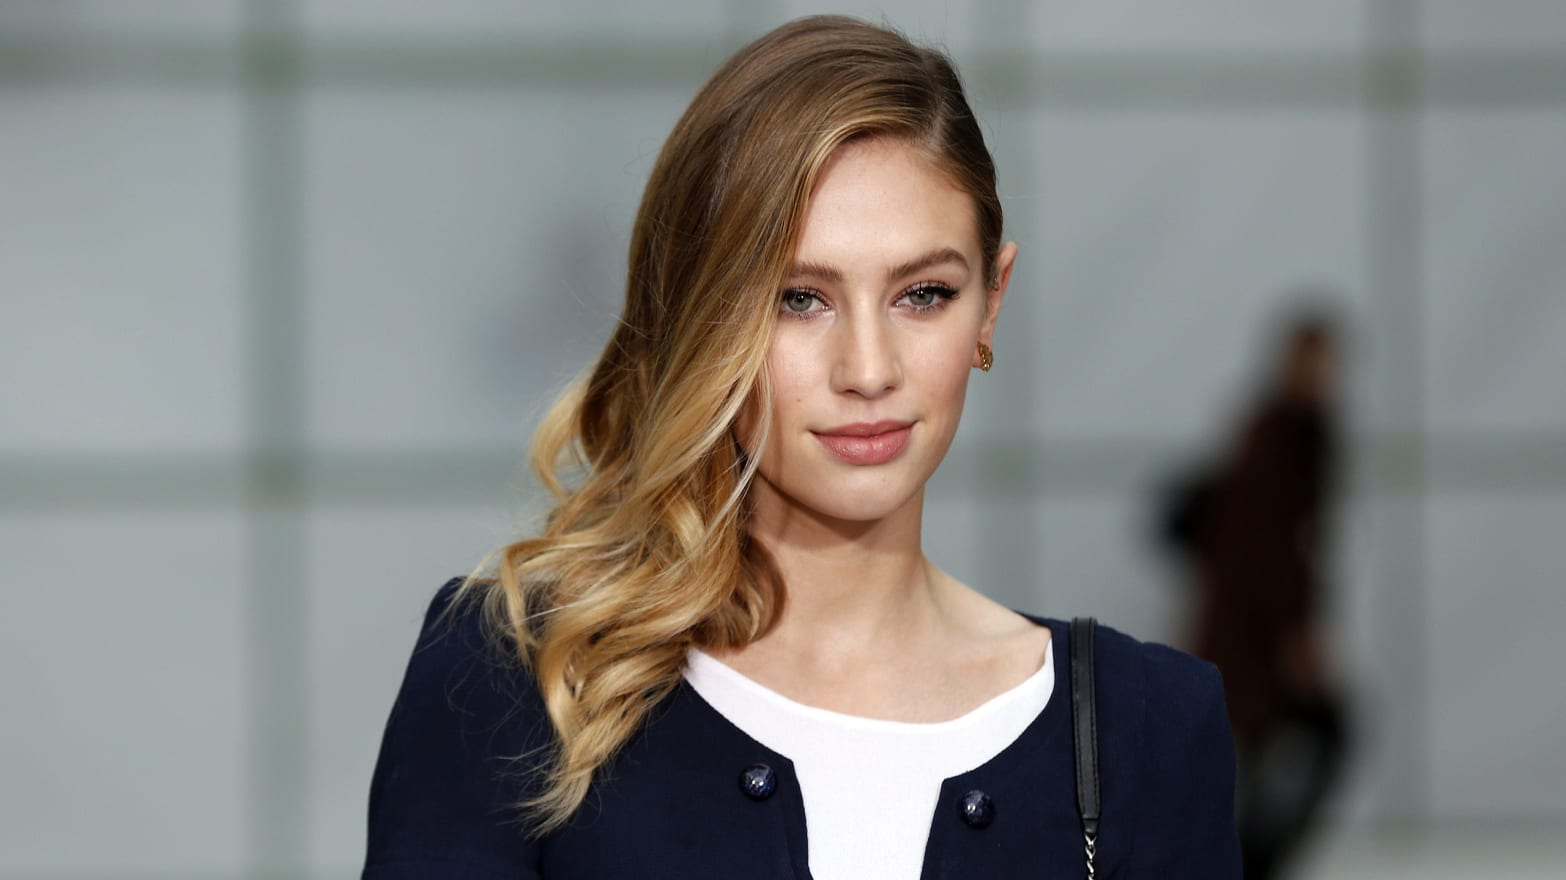 I Took Stunning Photo Of Dylan At >> Dylan Penn The Stunning Daughter Of Robin Wright And Sean Penn Is